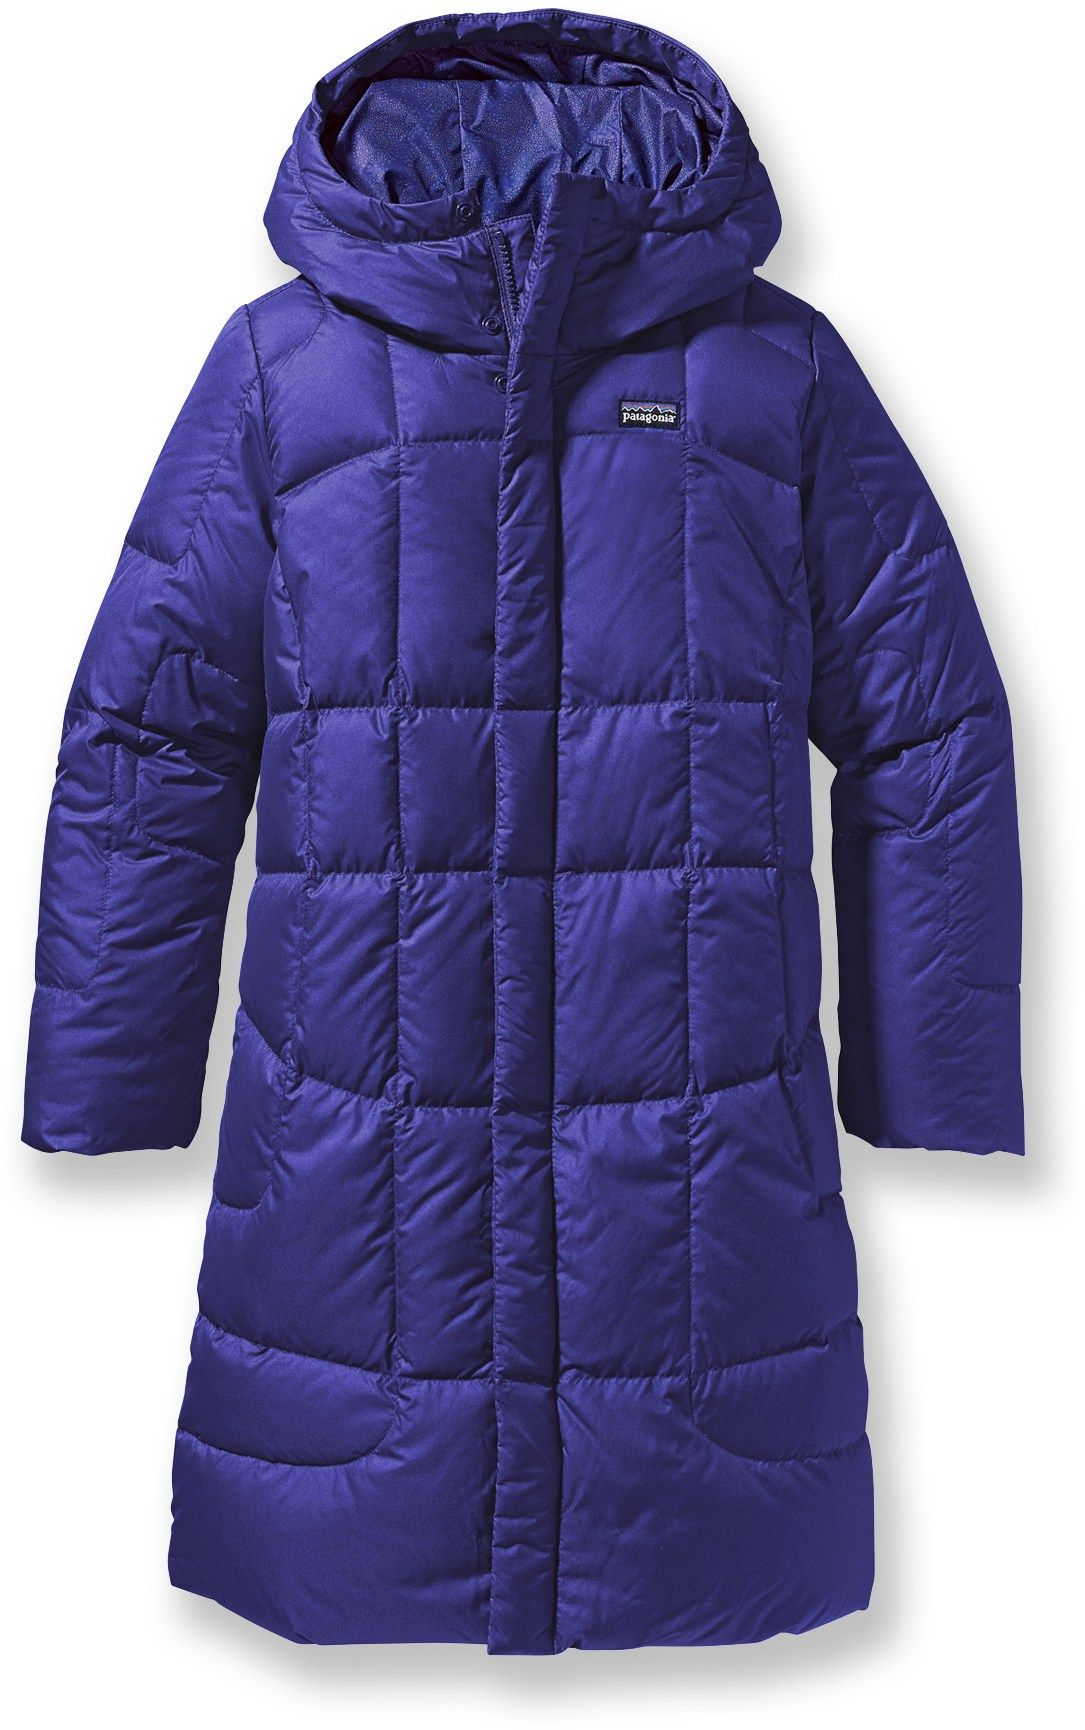 3072982d9  169.99 Patagonia Down Coat - Girls  - Free Shipping at REI.com ...